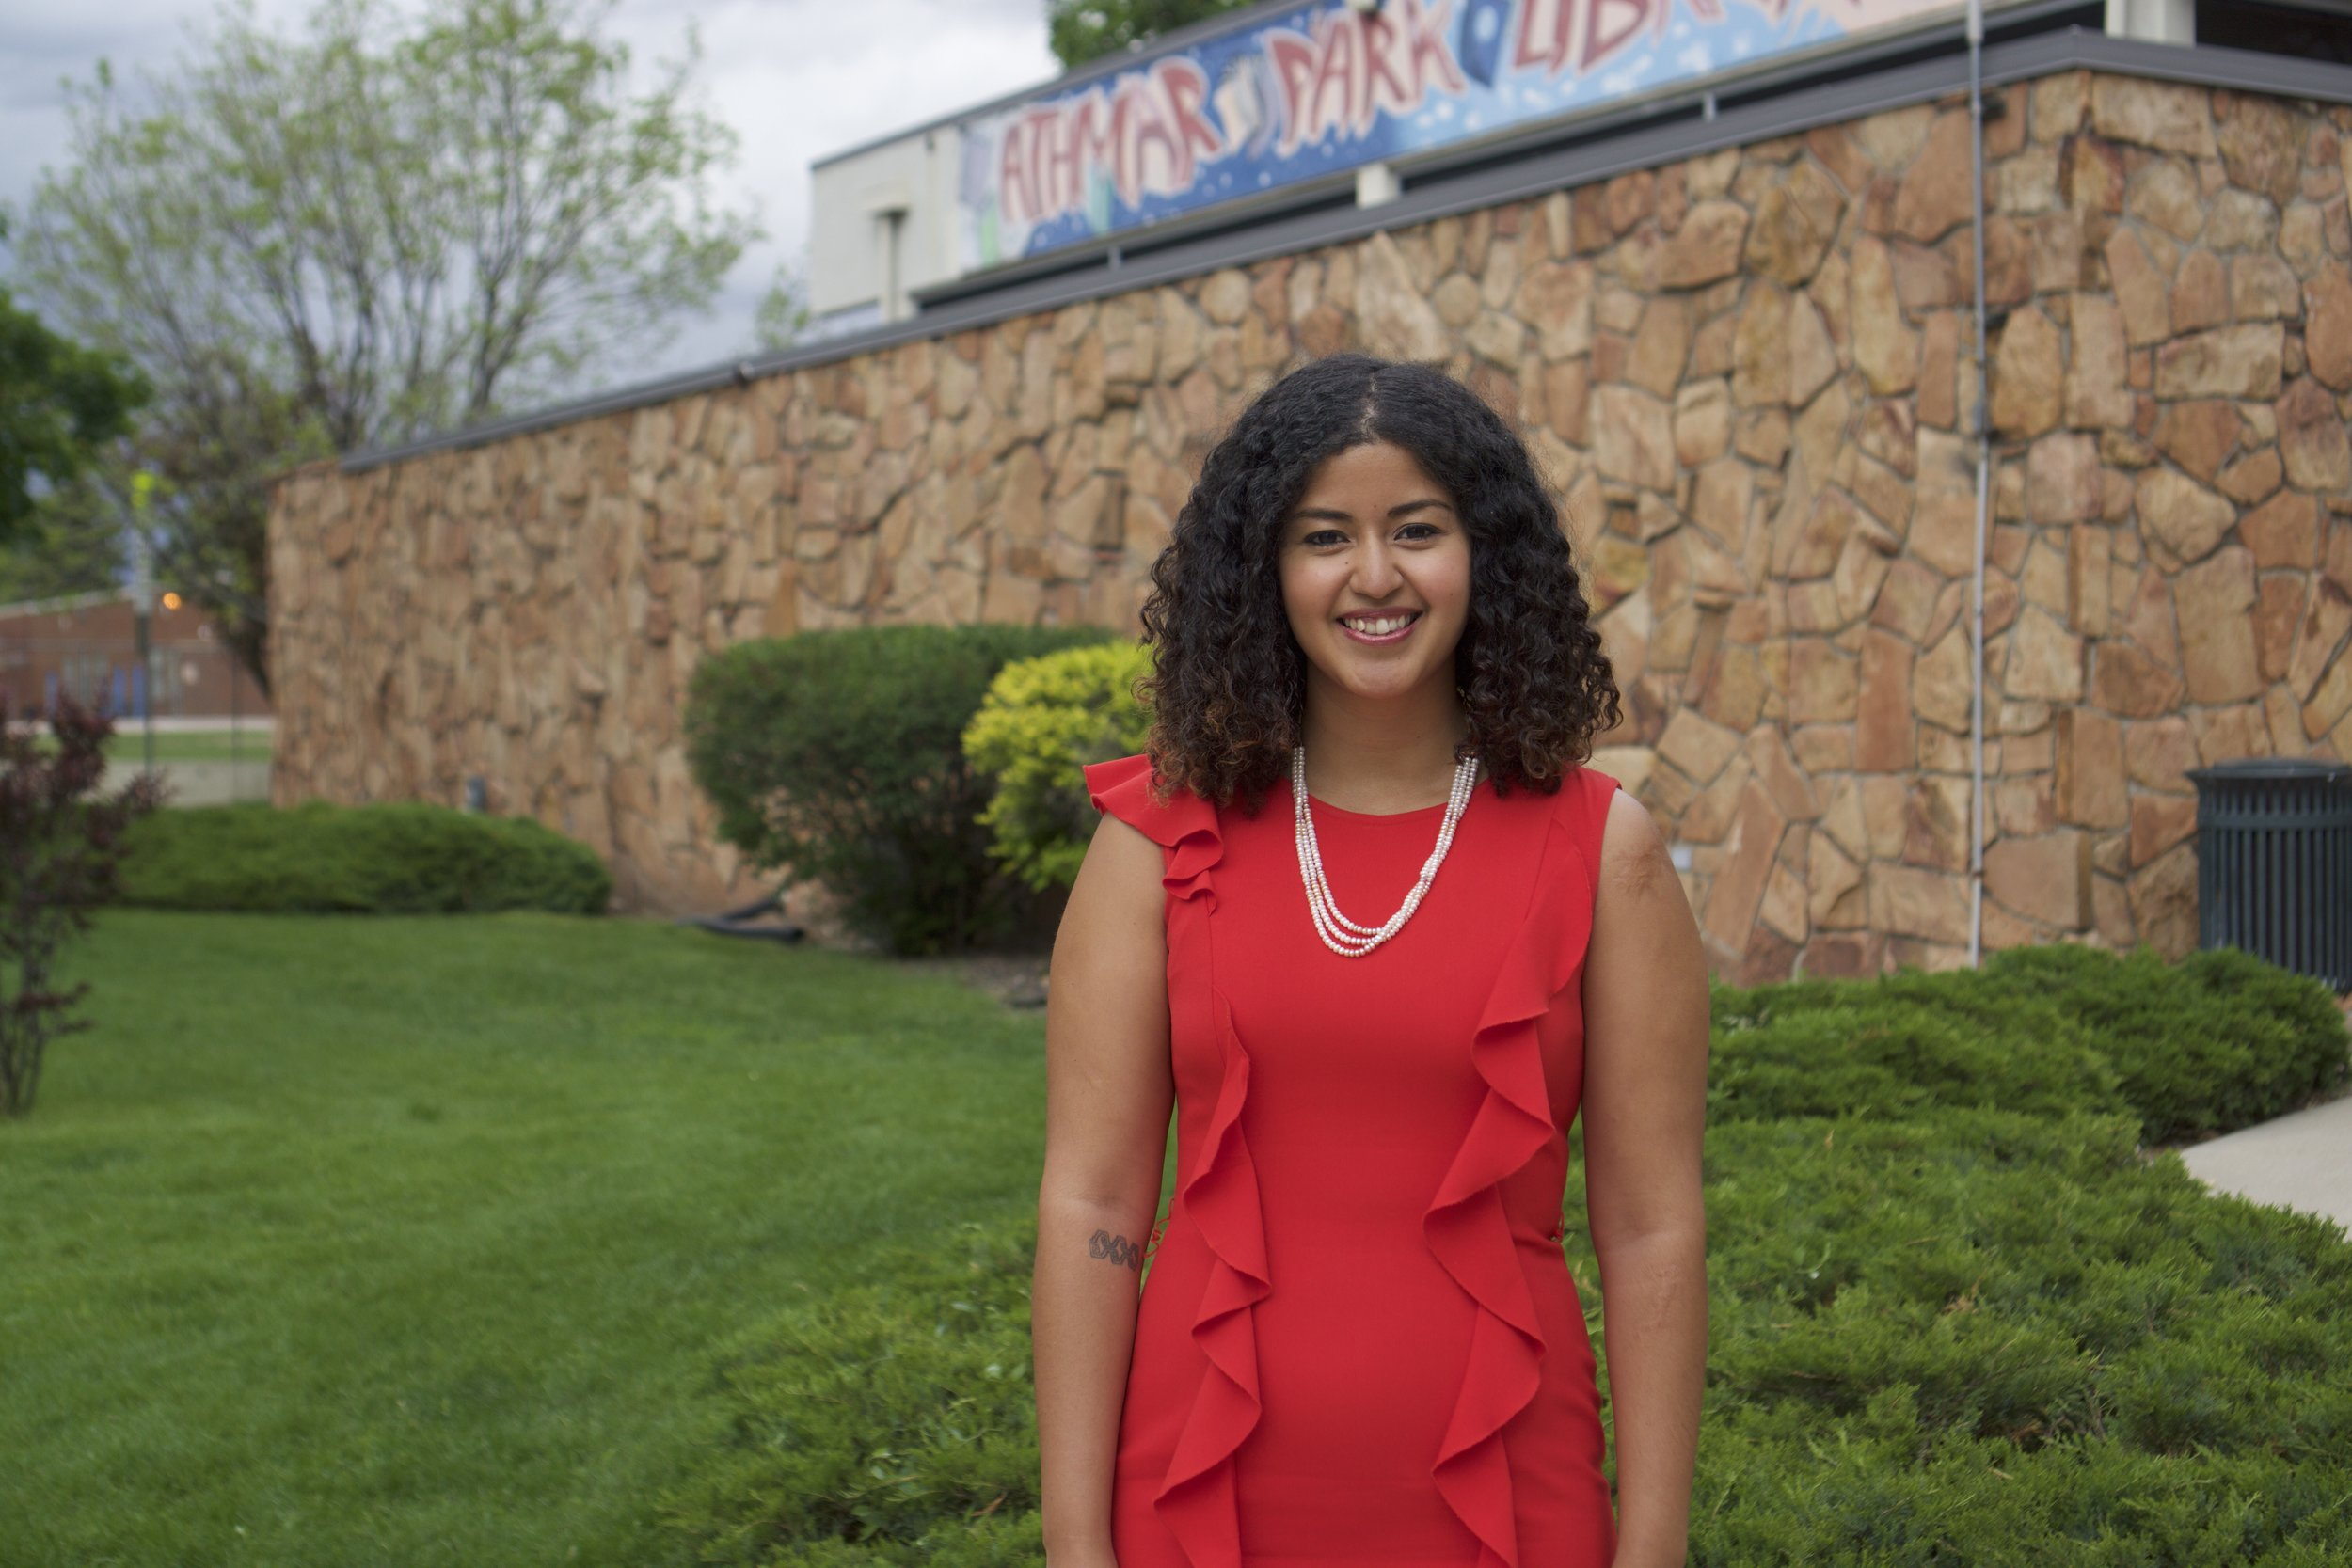 Angela Cobián, community organizer, Fullbright Scholar, school board candidate for DPS, and July's Broad of the Month.